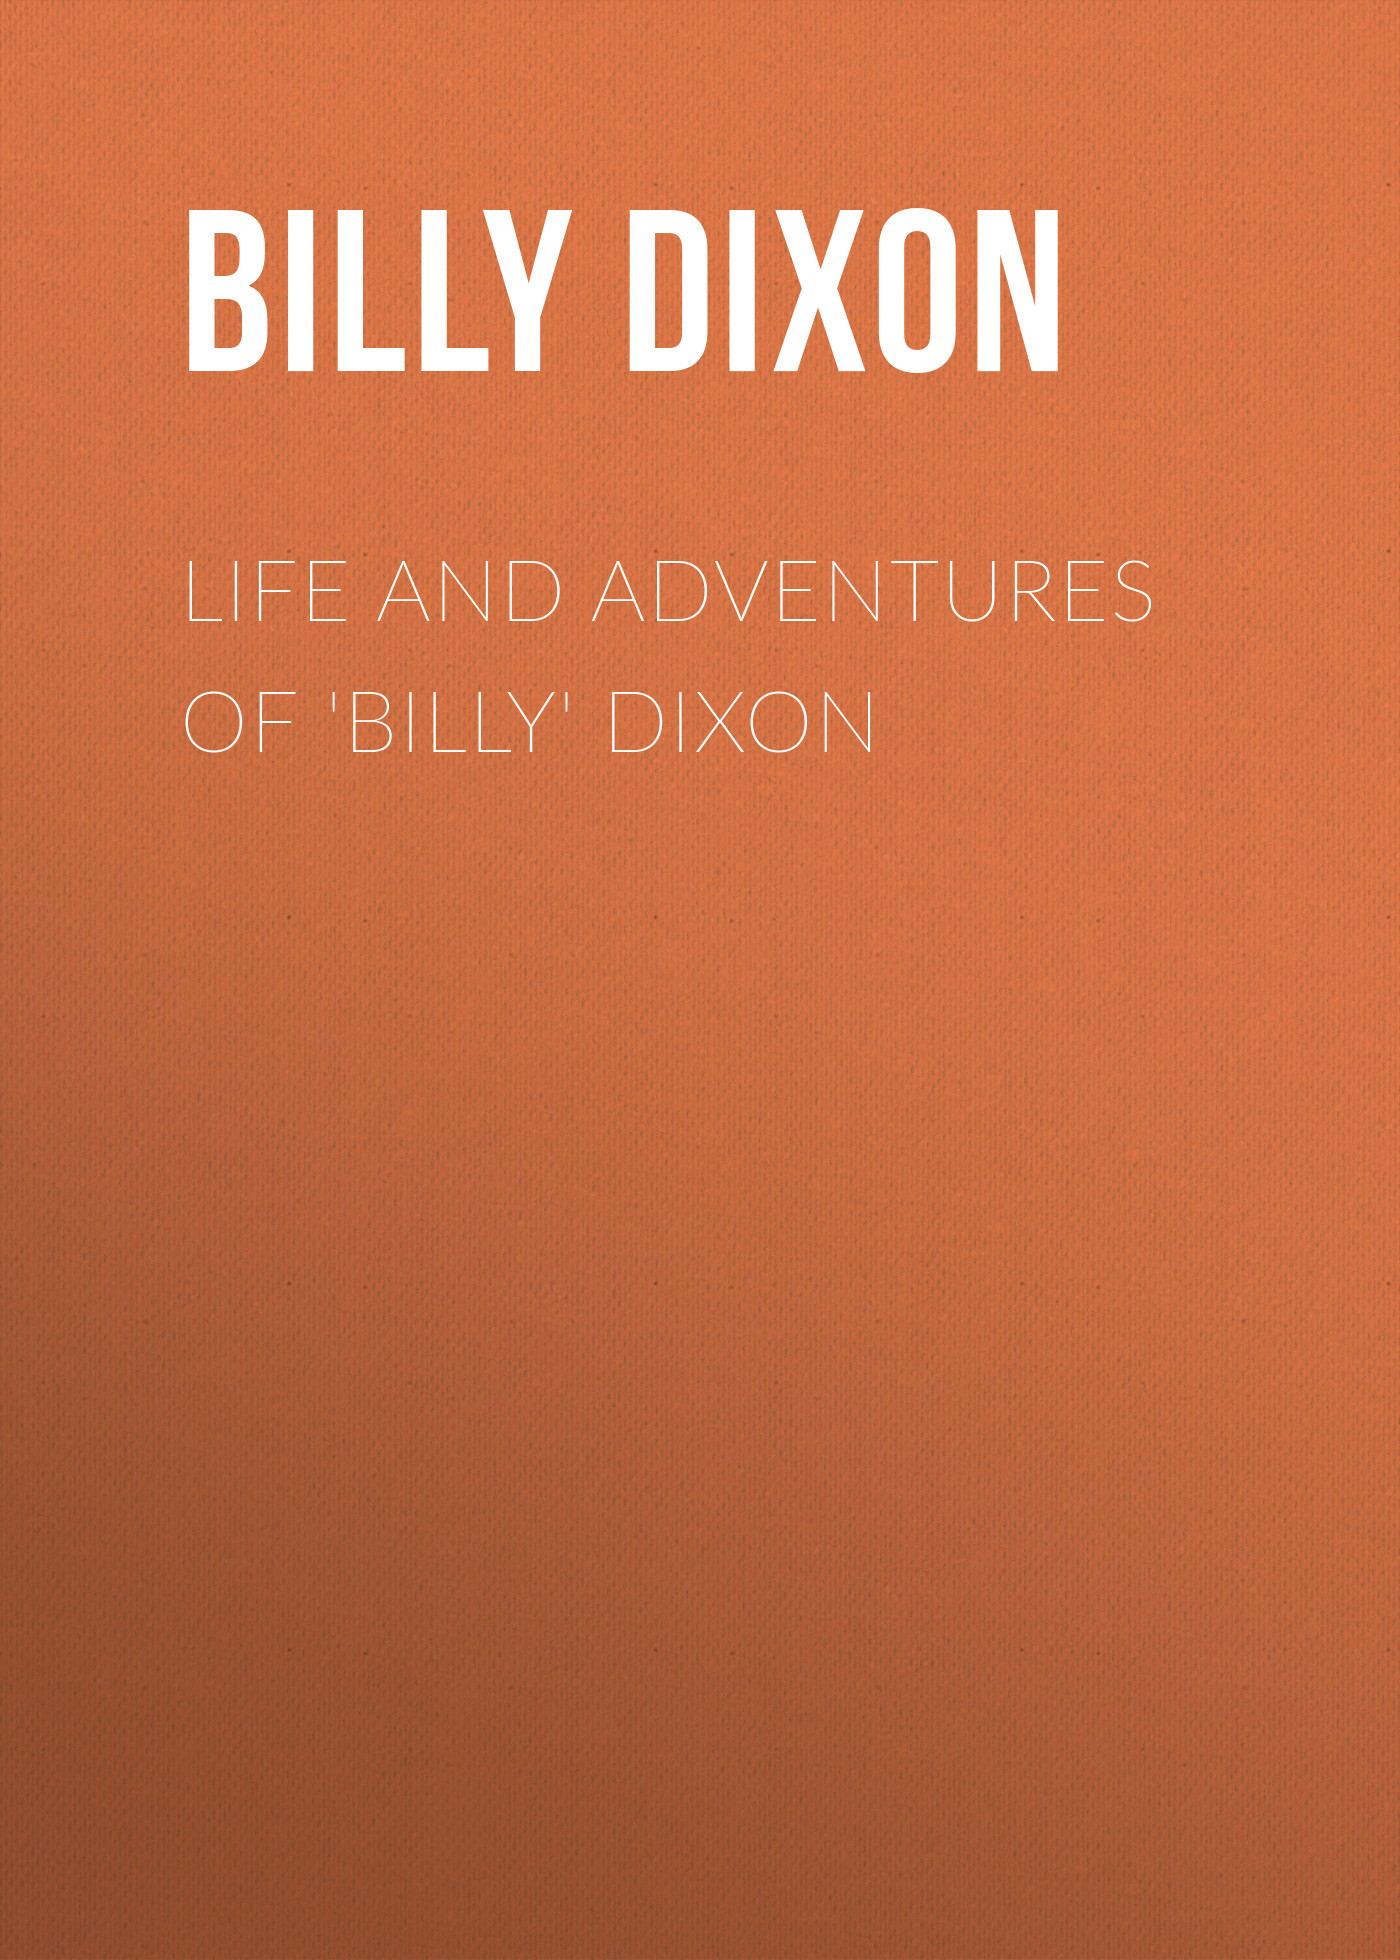 лучшая цена Dixon Billy Life and Adventures of 'Billy' Dixon